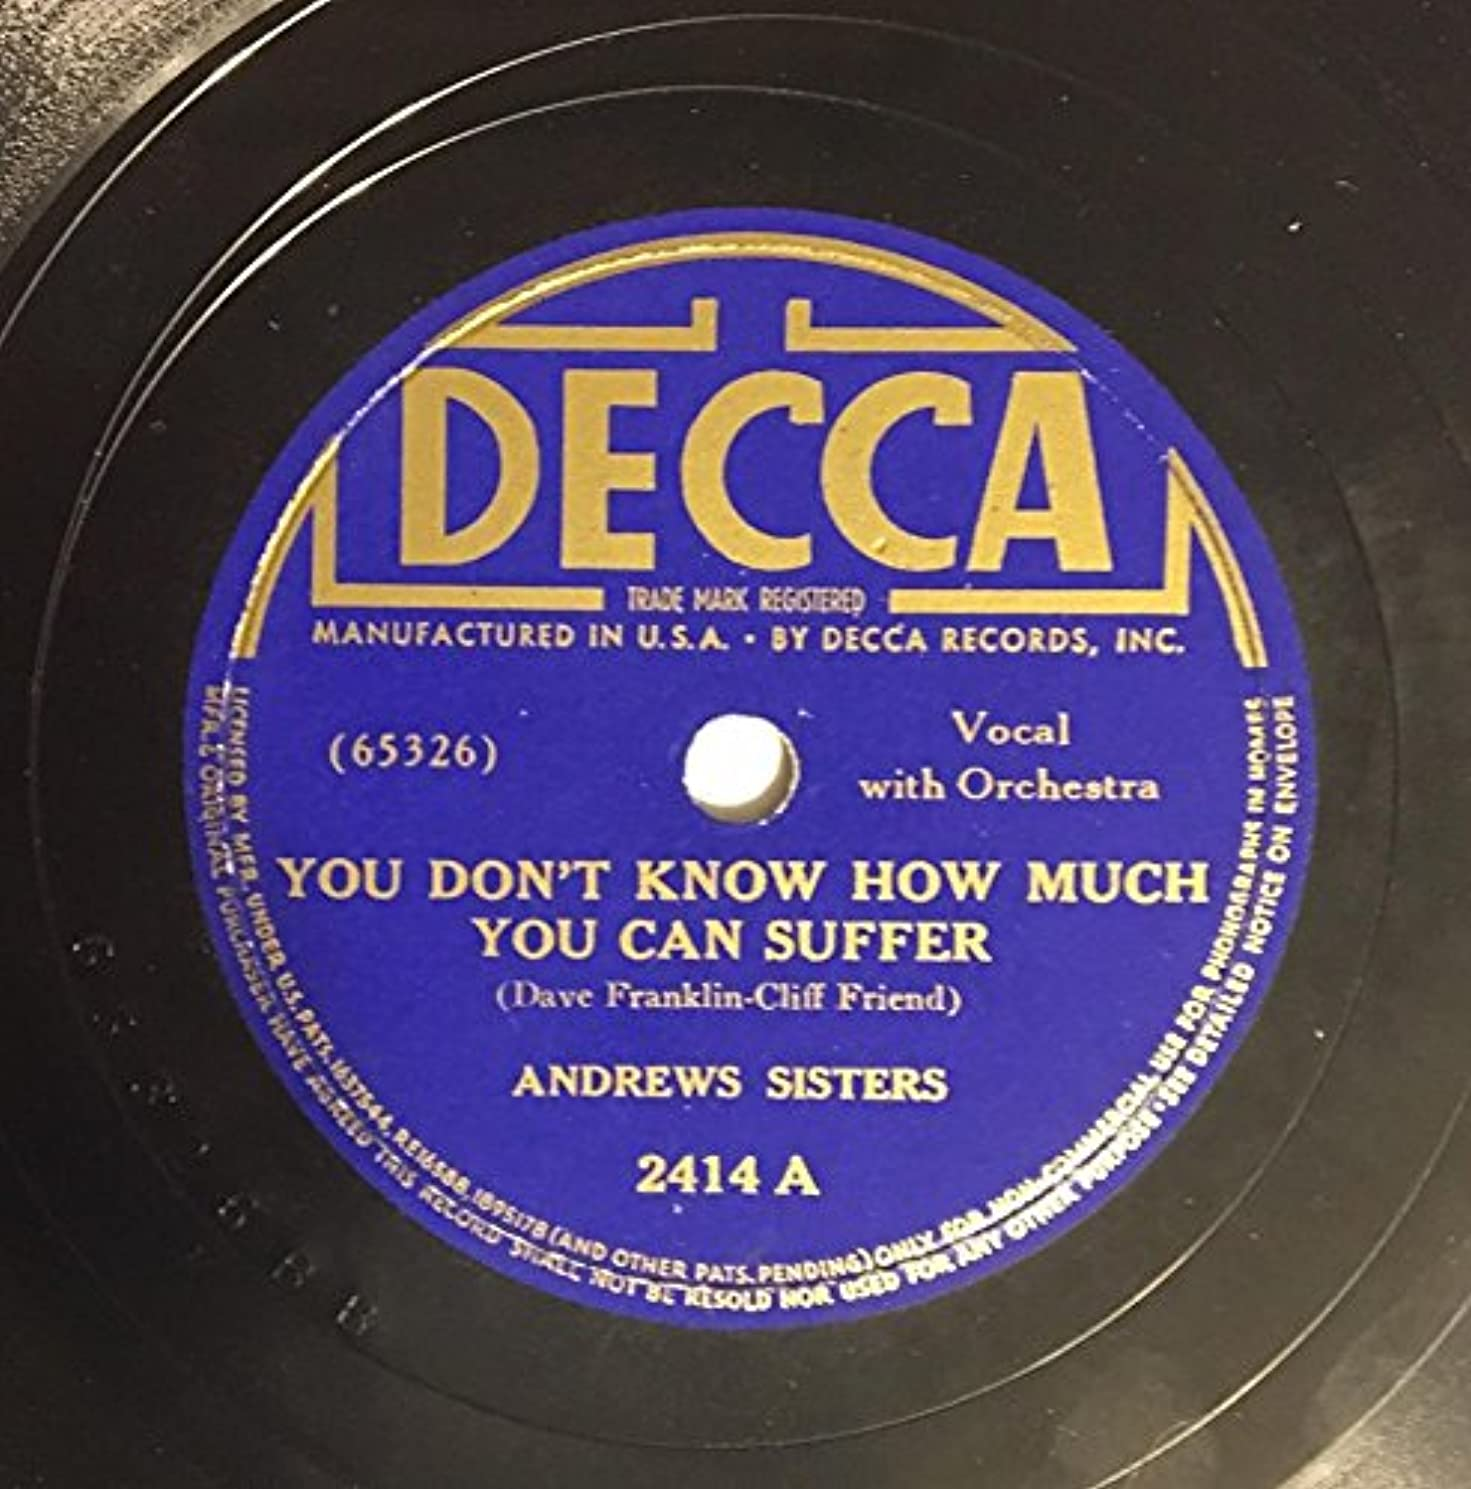 Rare 1939 Andrews Sisters You dont know how much you can suffer b/w Rock Rock Rock A Bye Baby : Shellac 78 RPM Decca 2414 : Comes with a CD Transfer